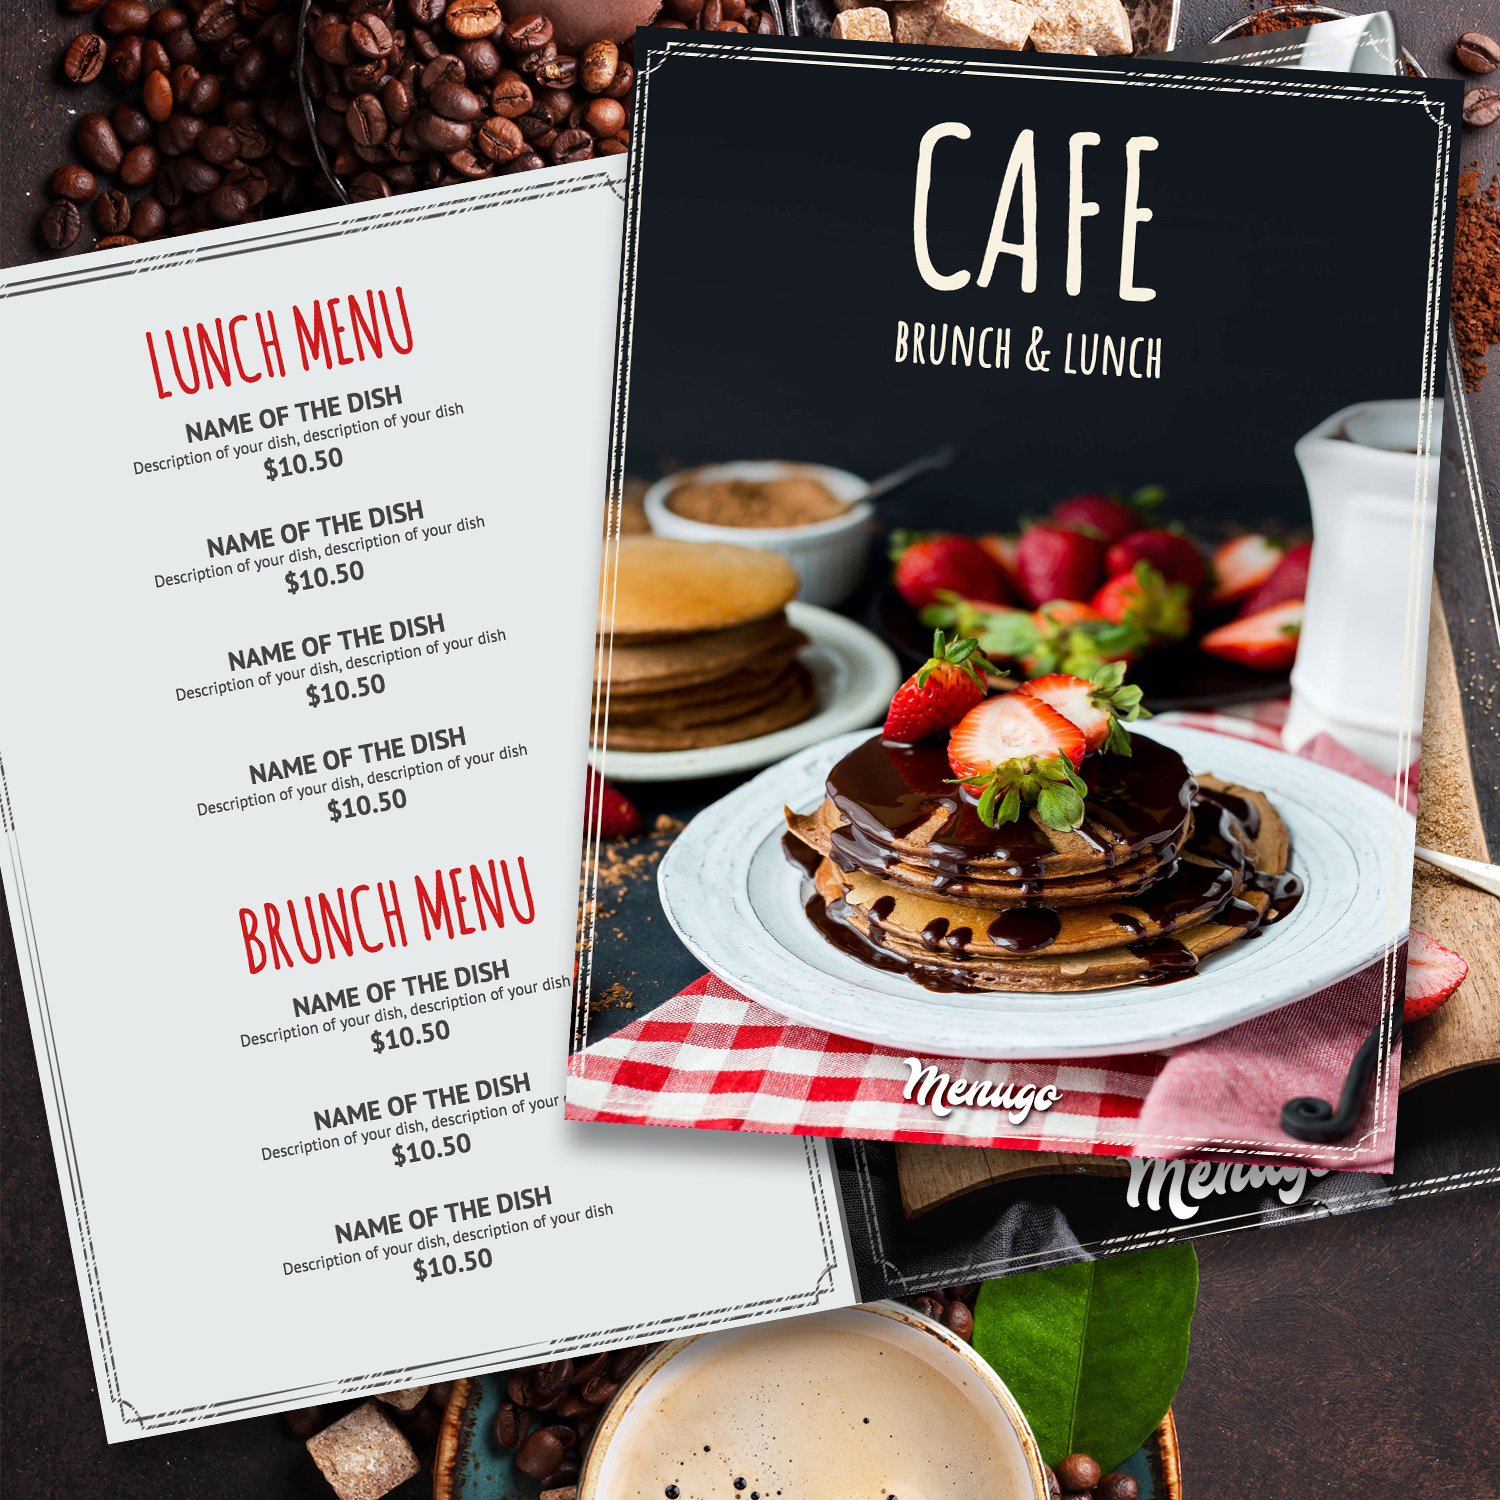 Cafe Brunch&Lunch Menu Design